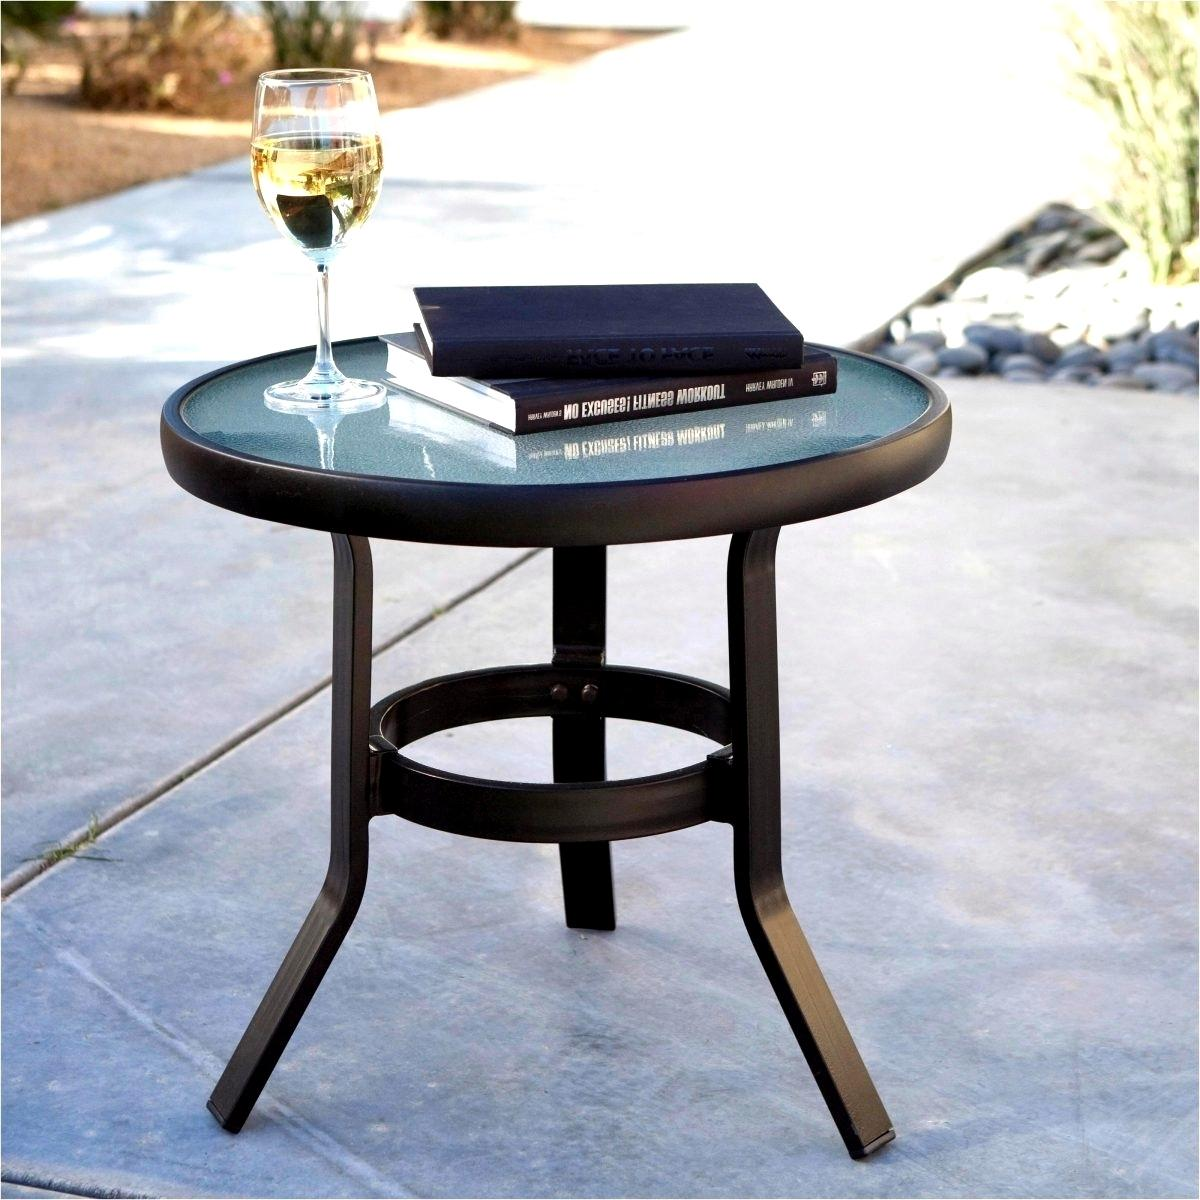 the super nice resin patio end table tures jockboymusic inspiring coast side ideas del rey accent tables rascalartsnyc luxury beautiful mosaic short round wicker teal furniture